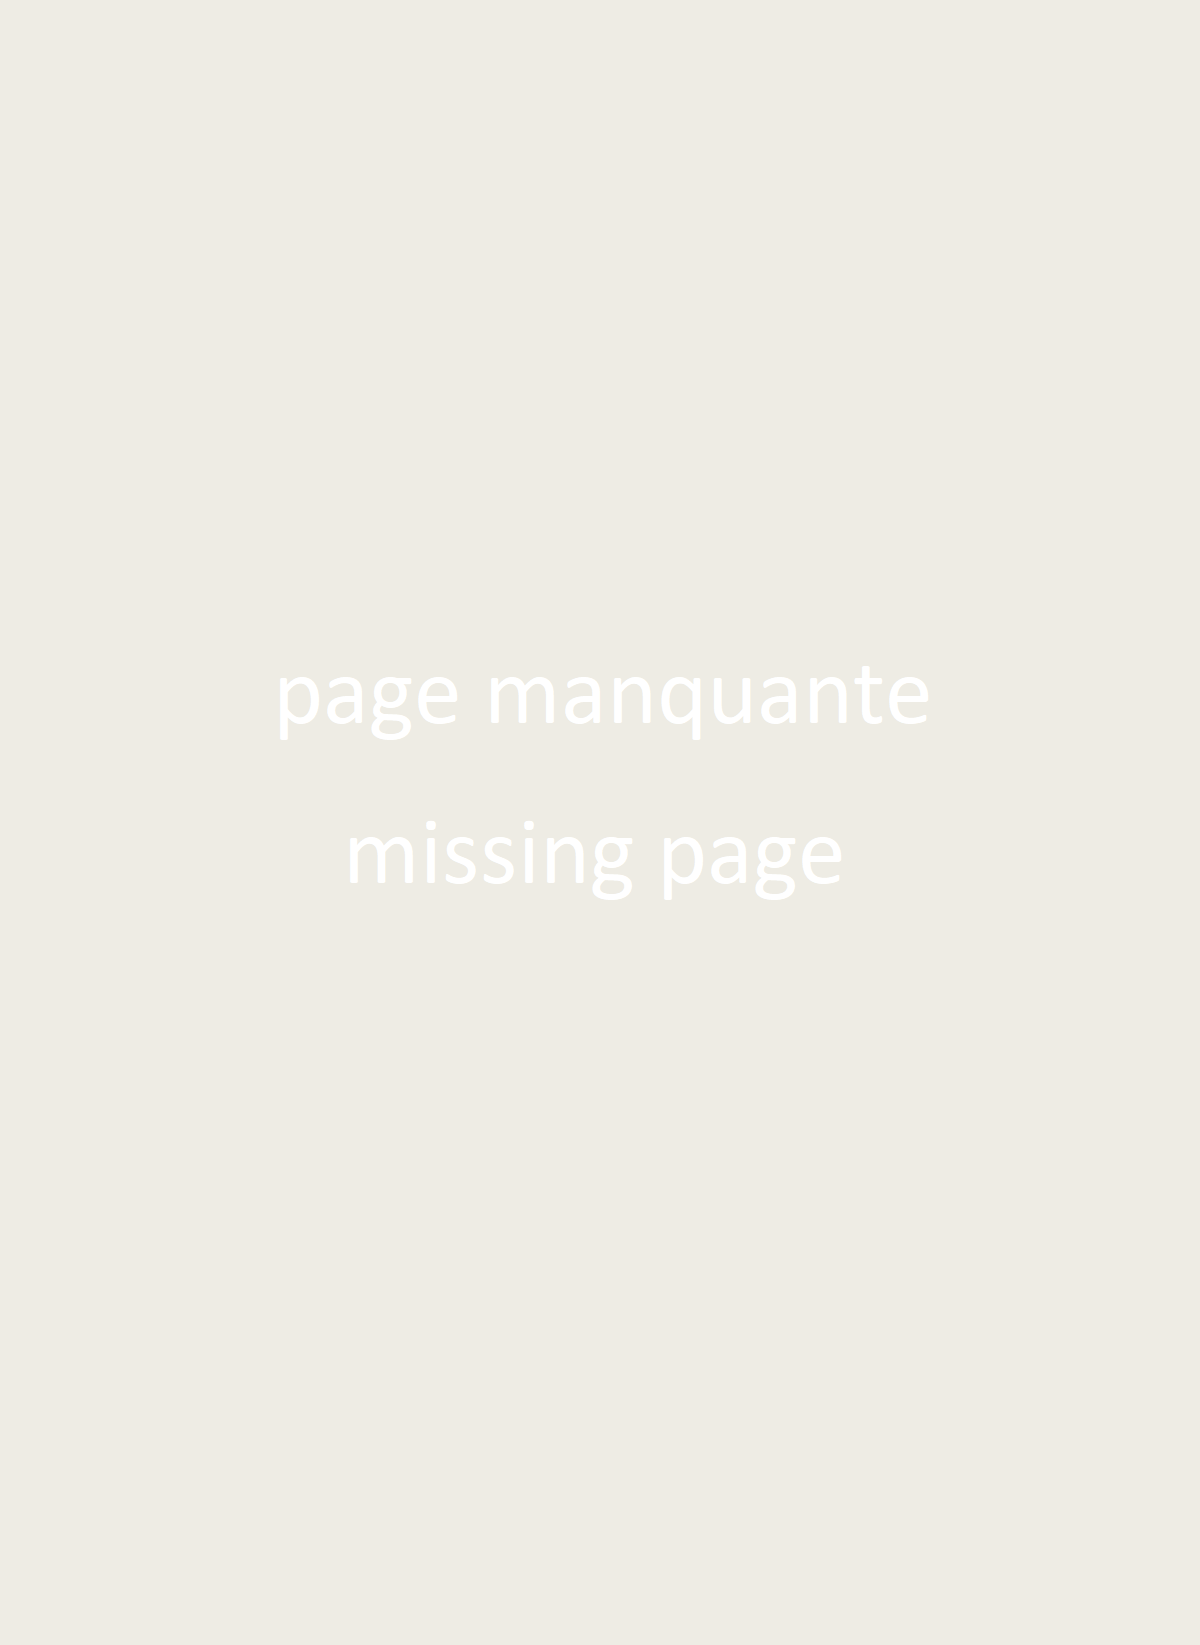 (Page manquante/missing page)